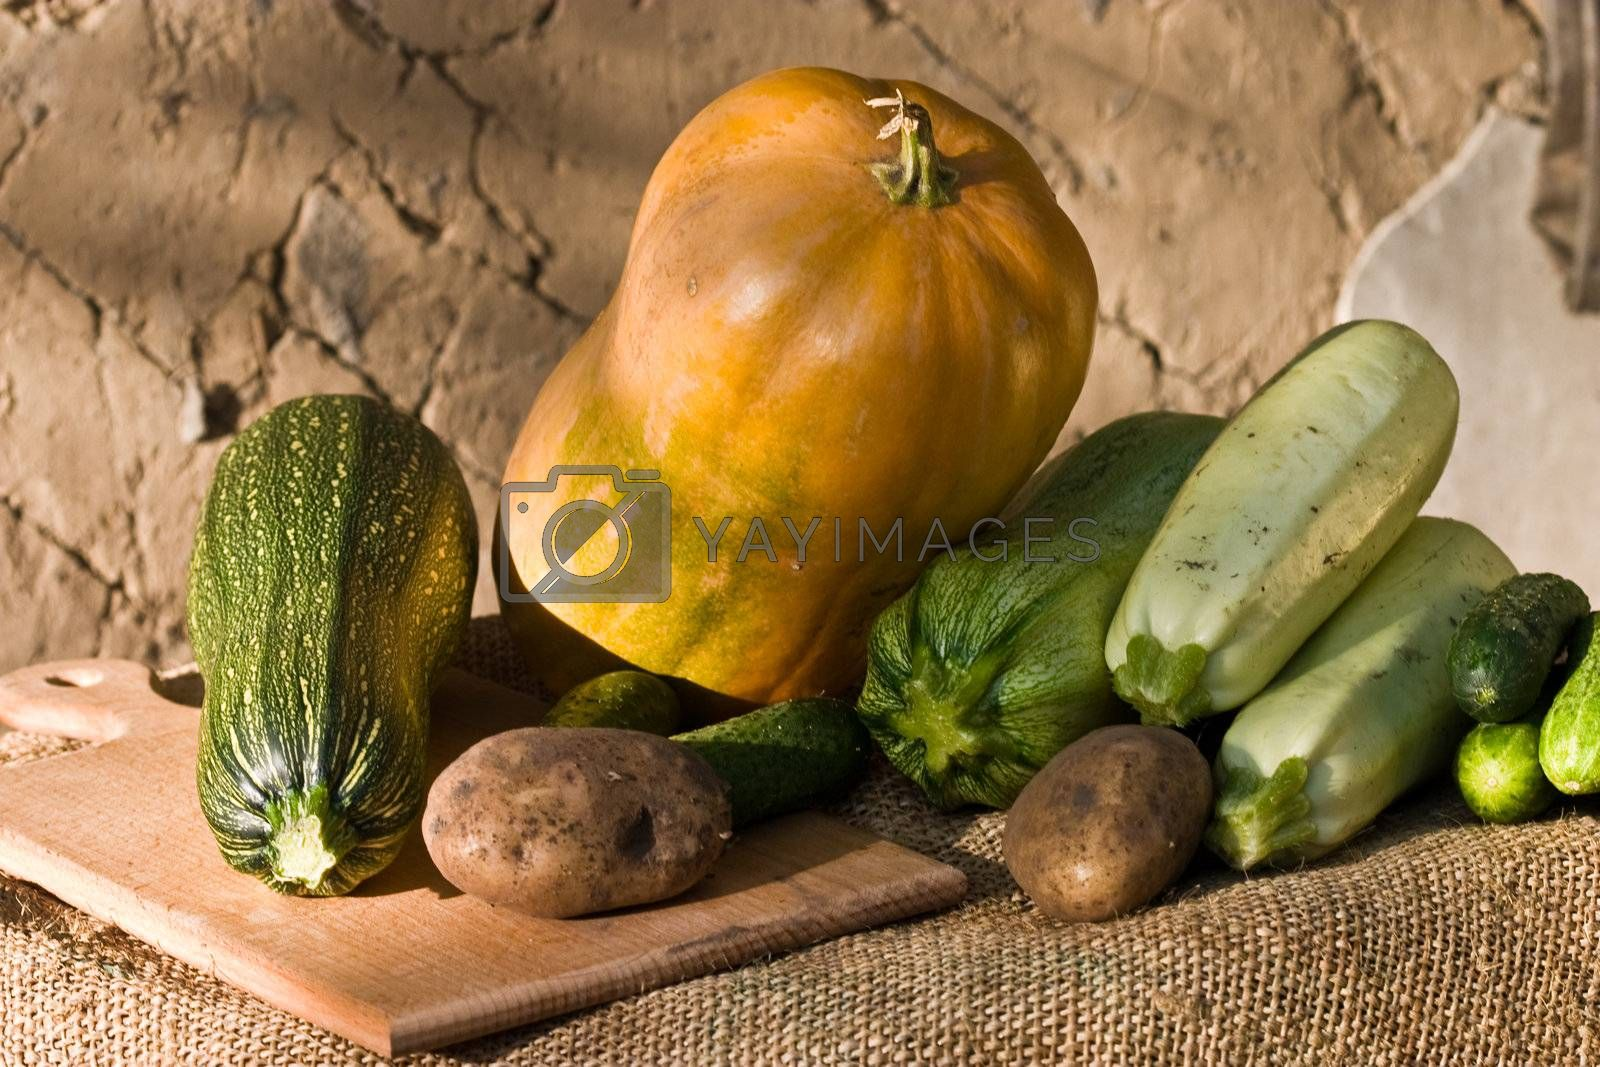 Royalty free image of vegetables by agg